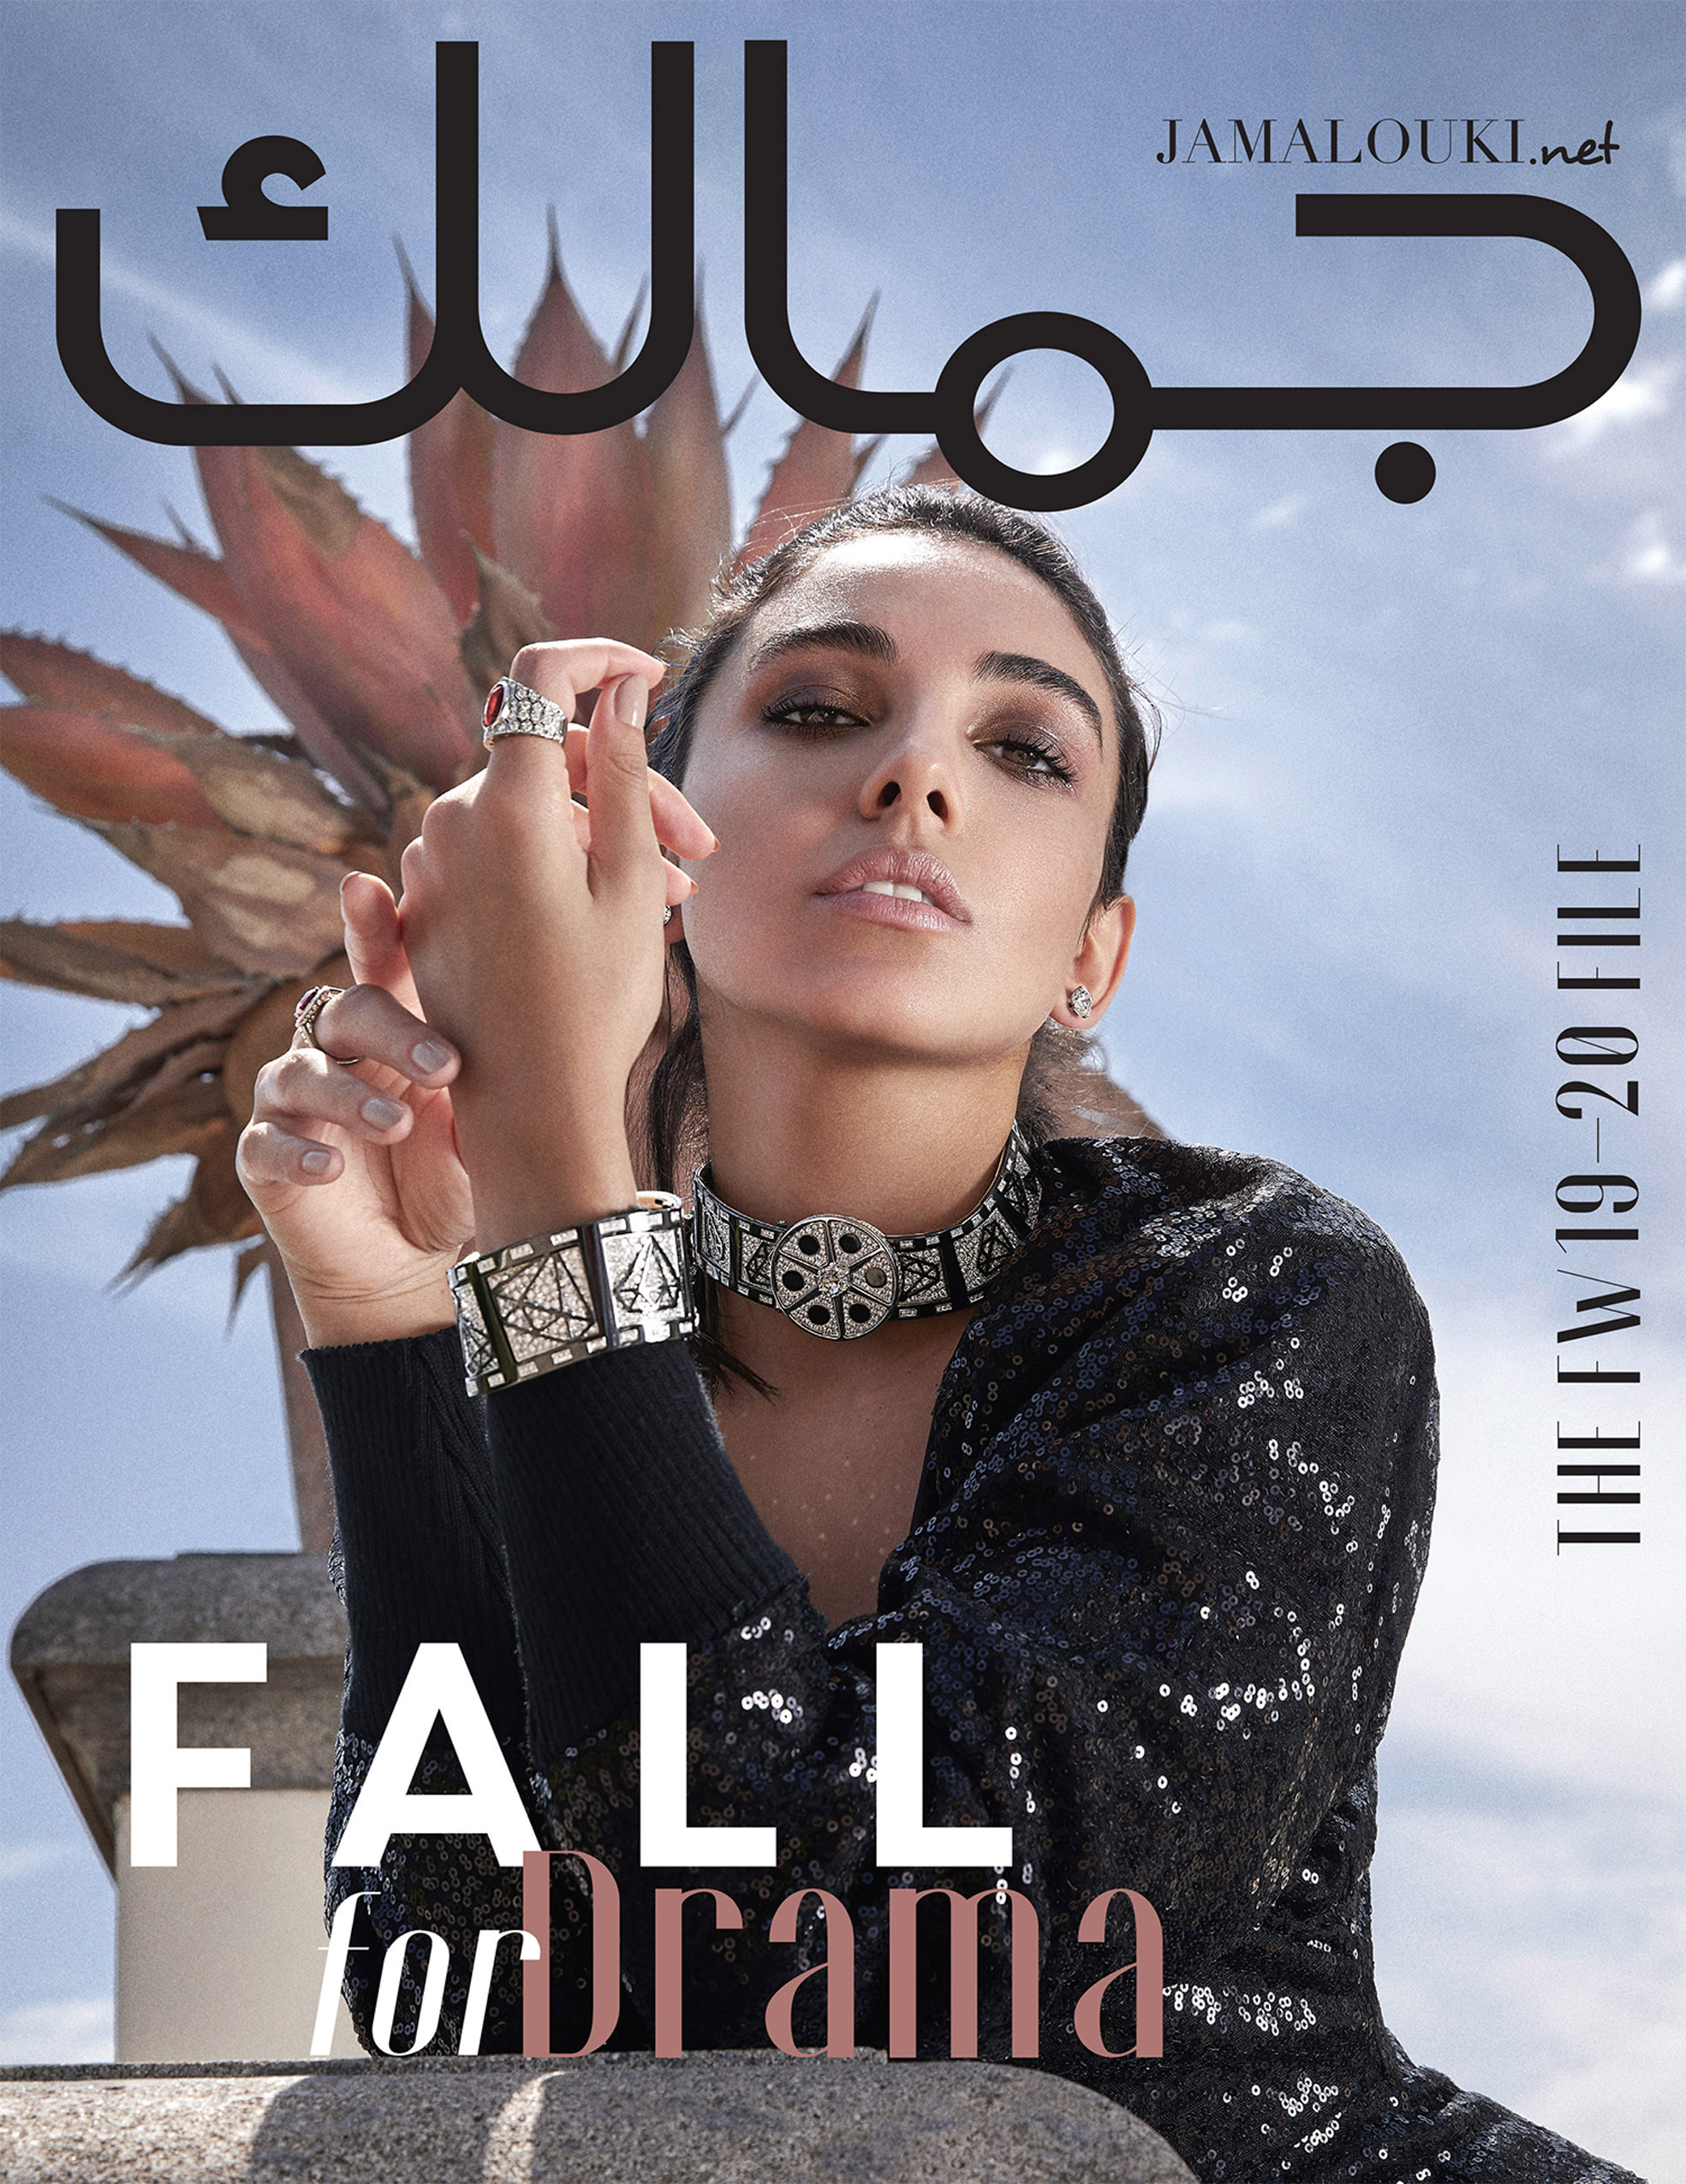 Jamalouki Magazine September 2019 Cover